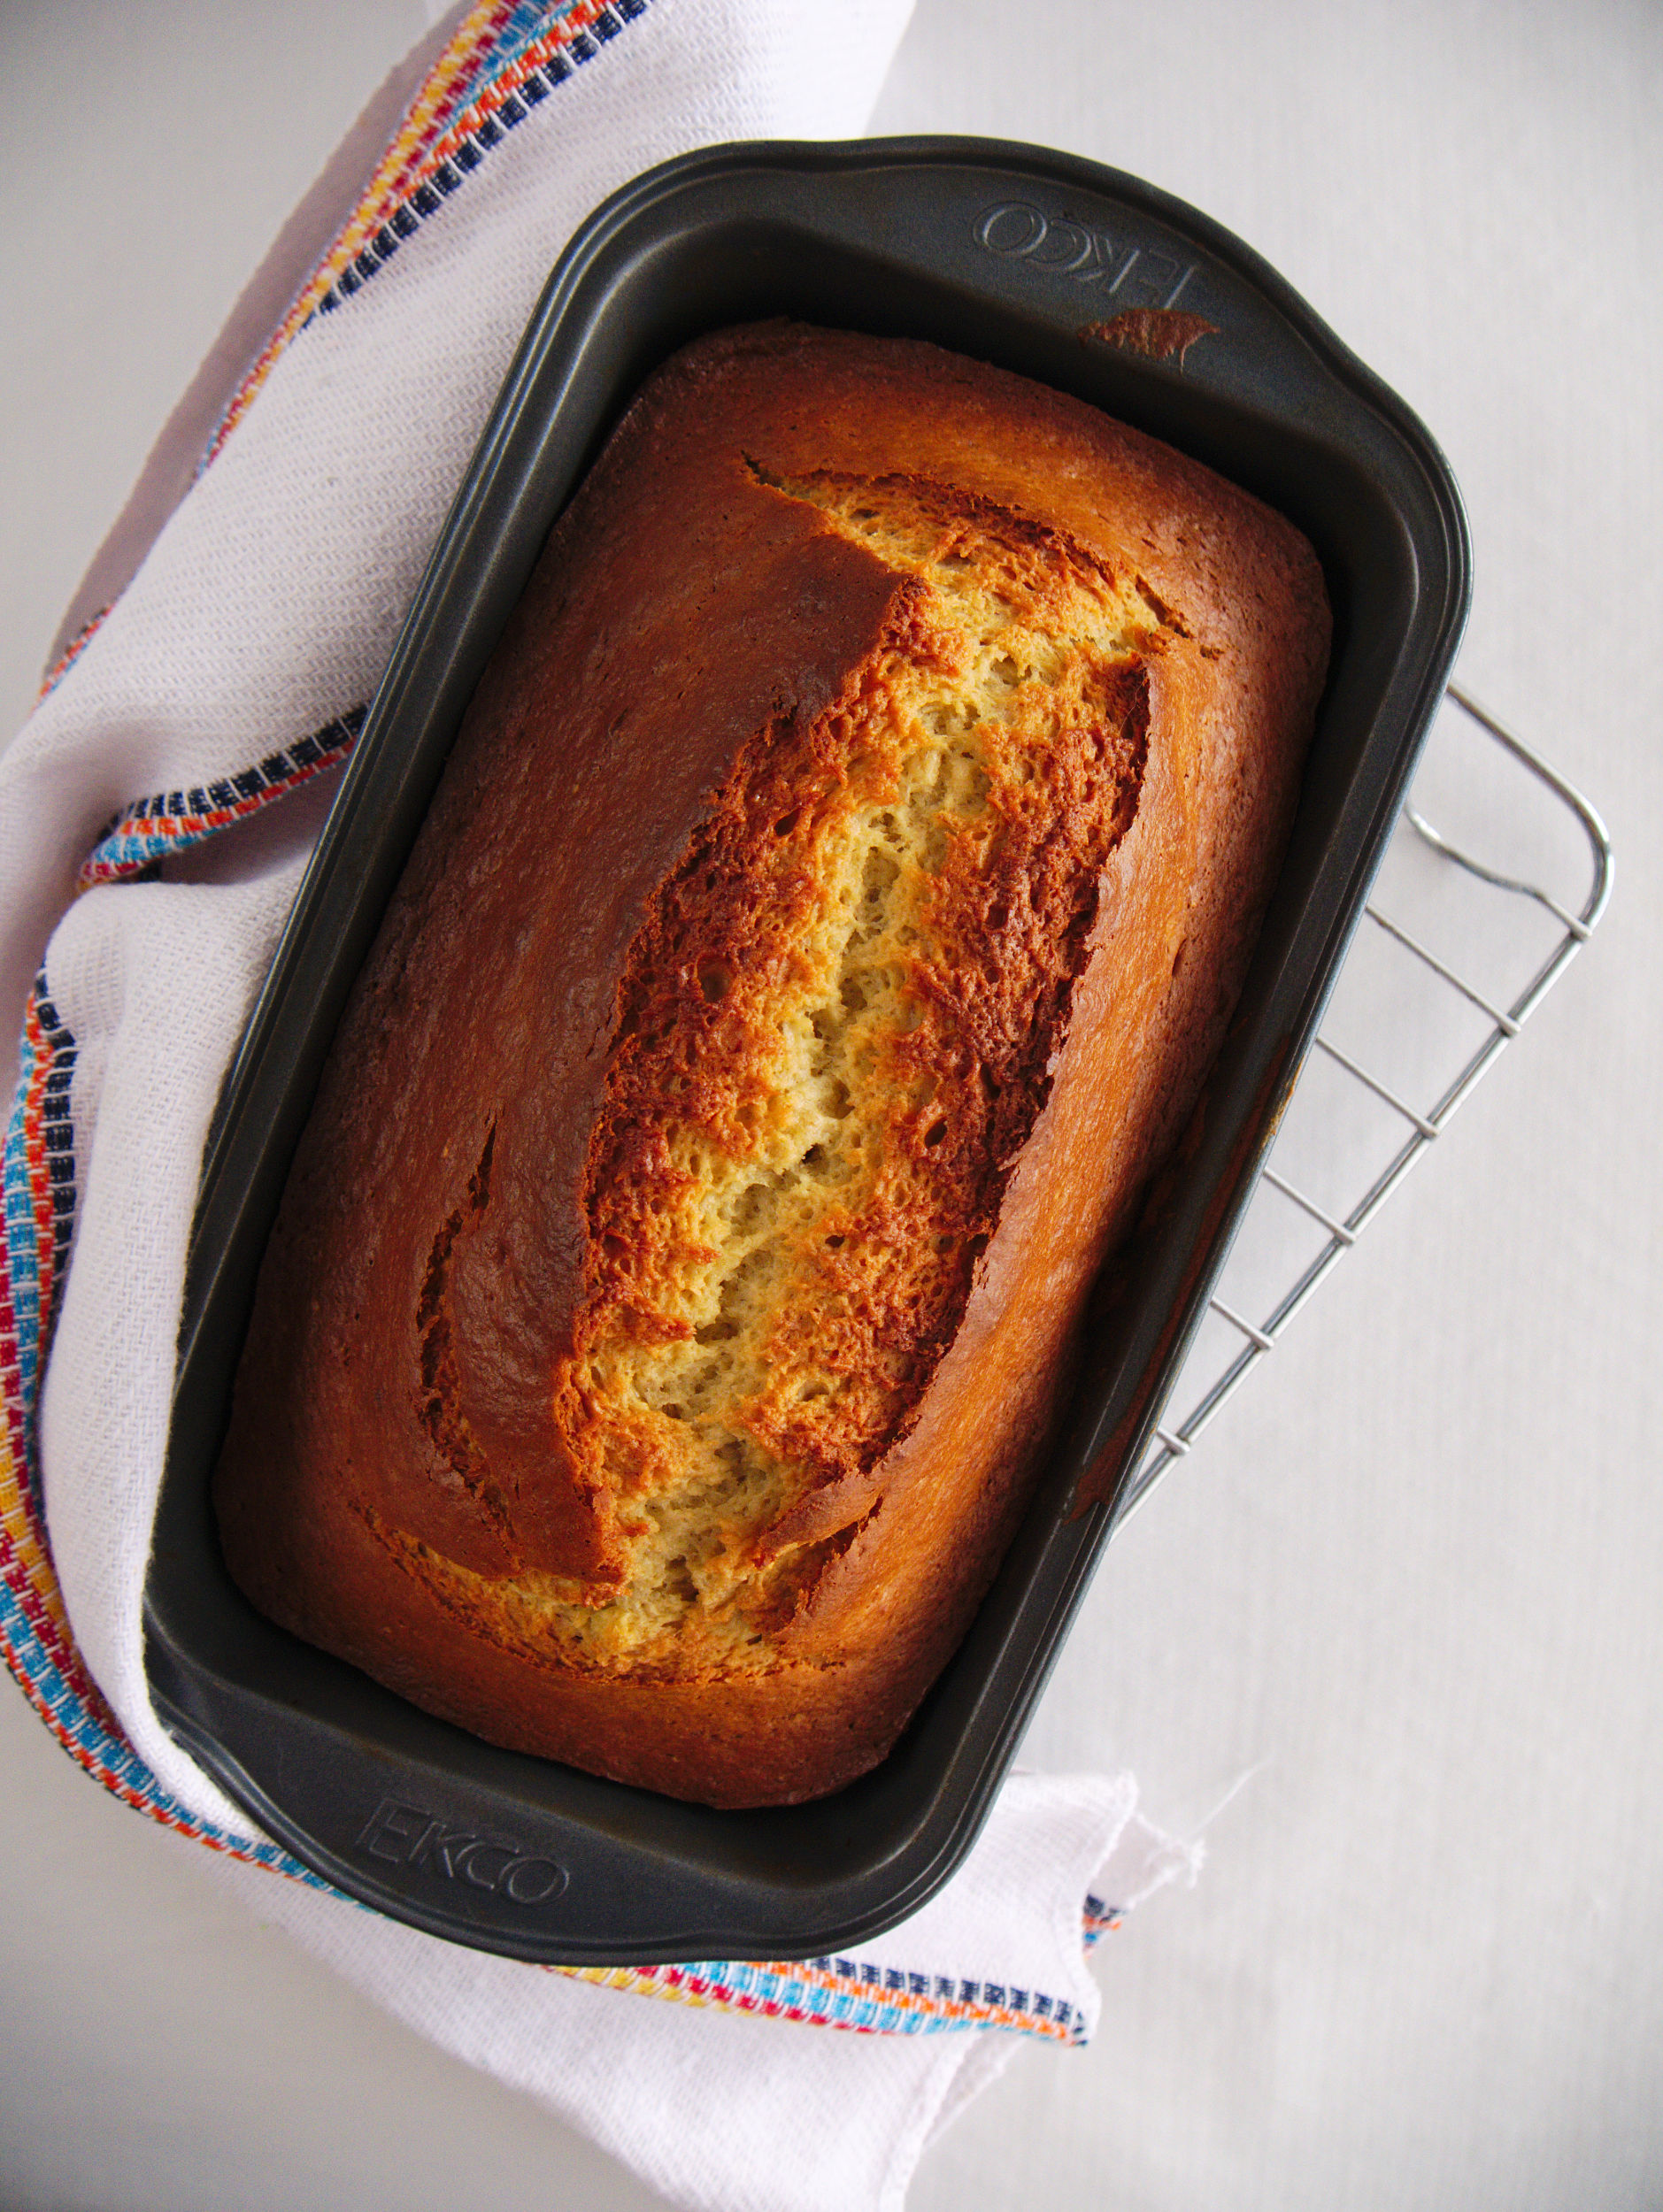 fully baked banana bread, still in the loaf pan, cooling on a rack